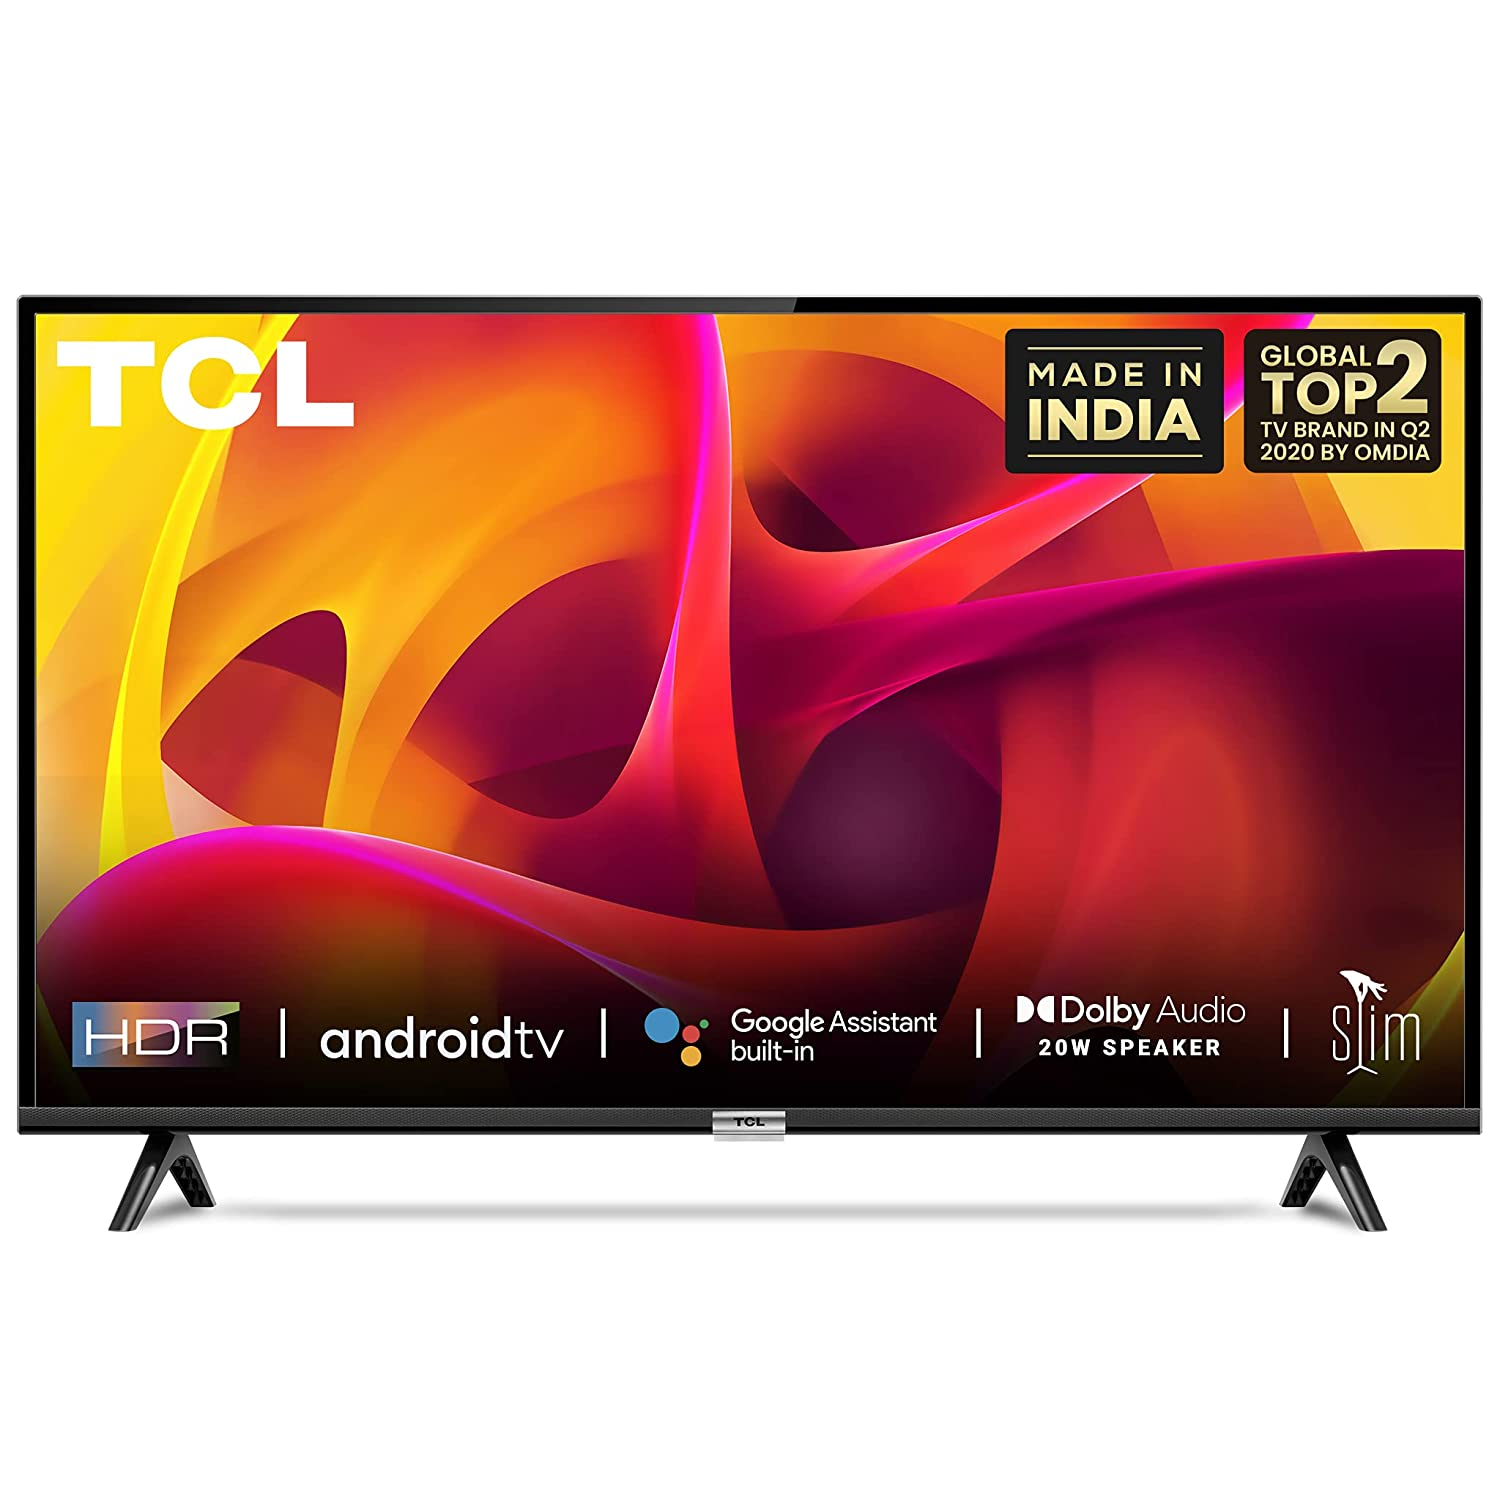 Best TV Under 30000 In India 2020 tcl-49